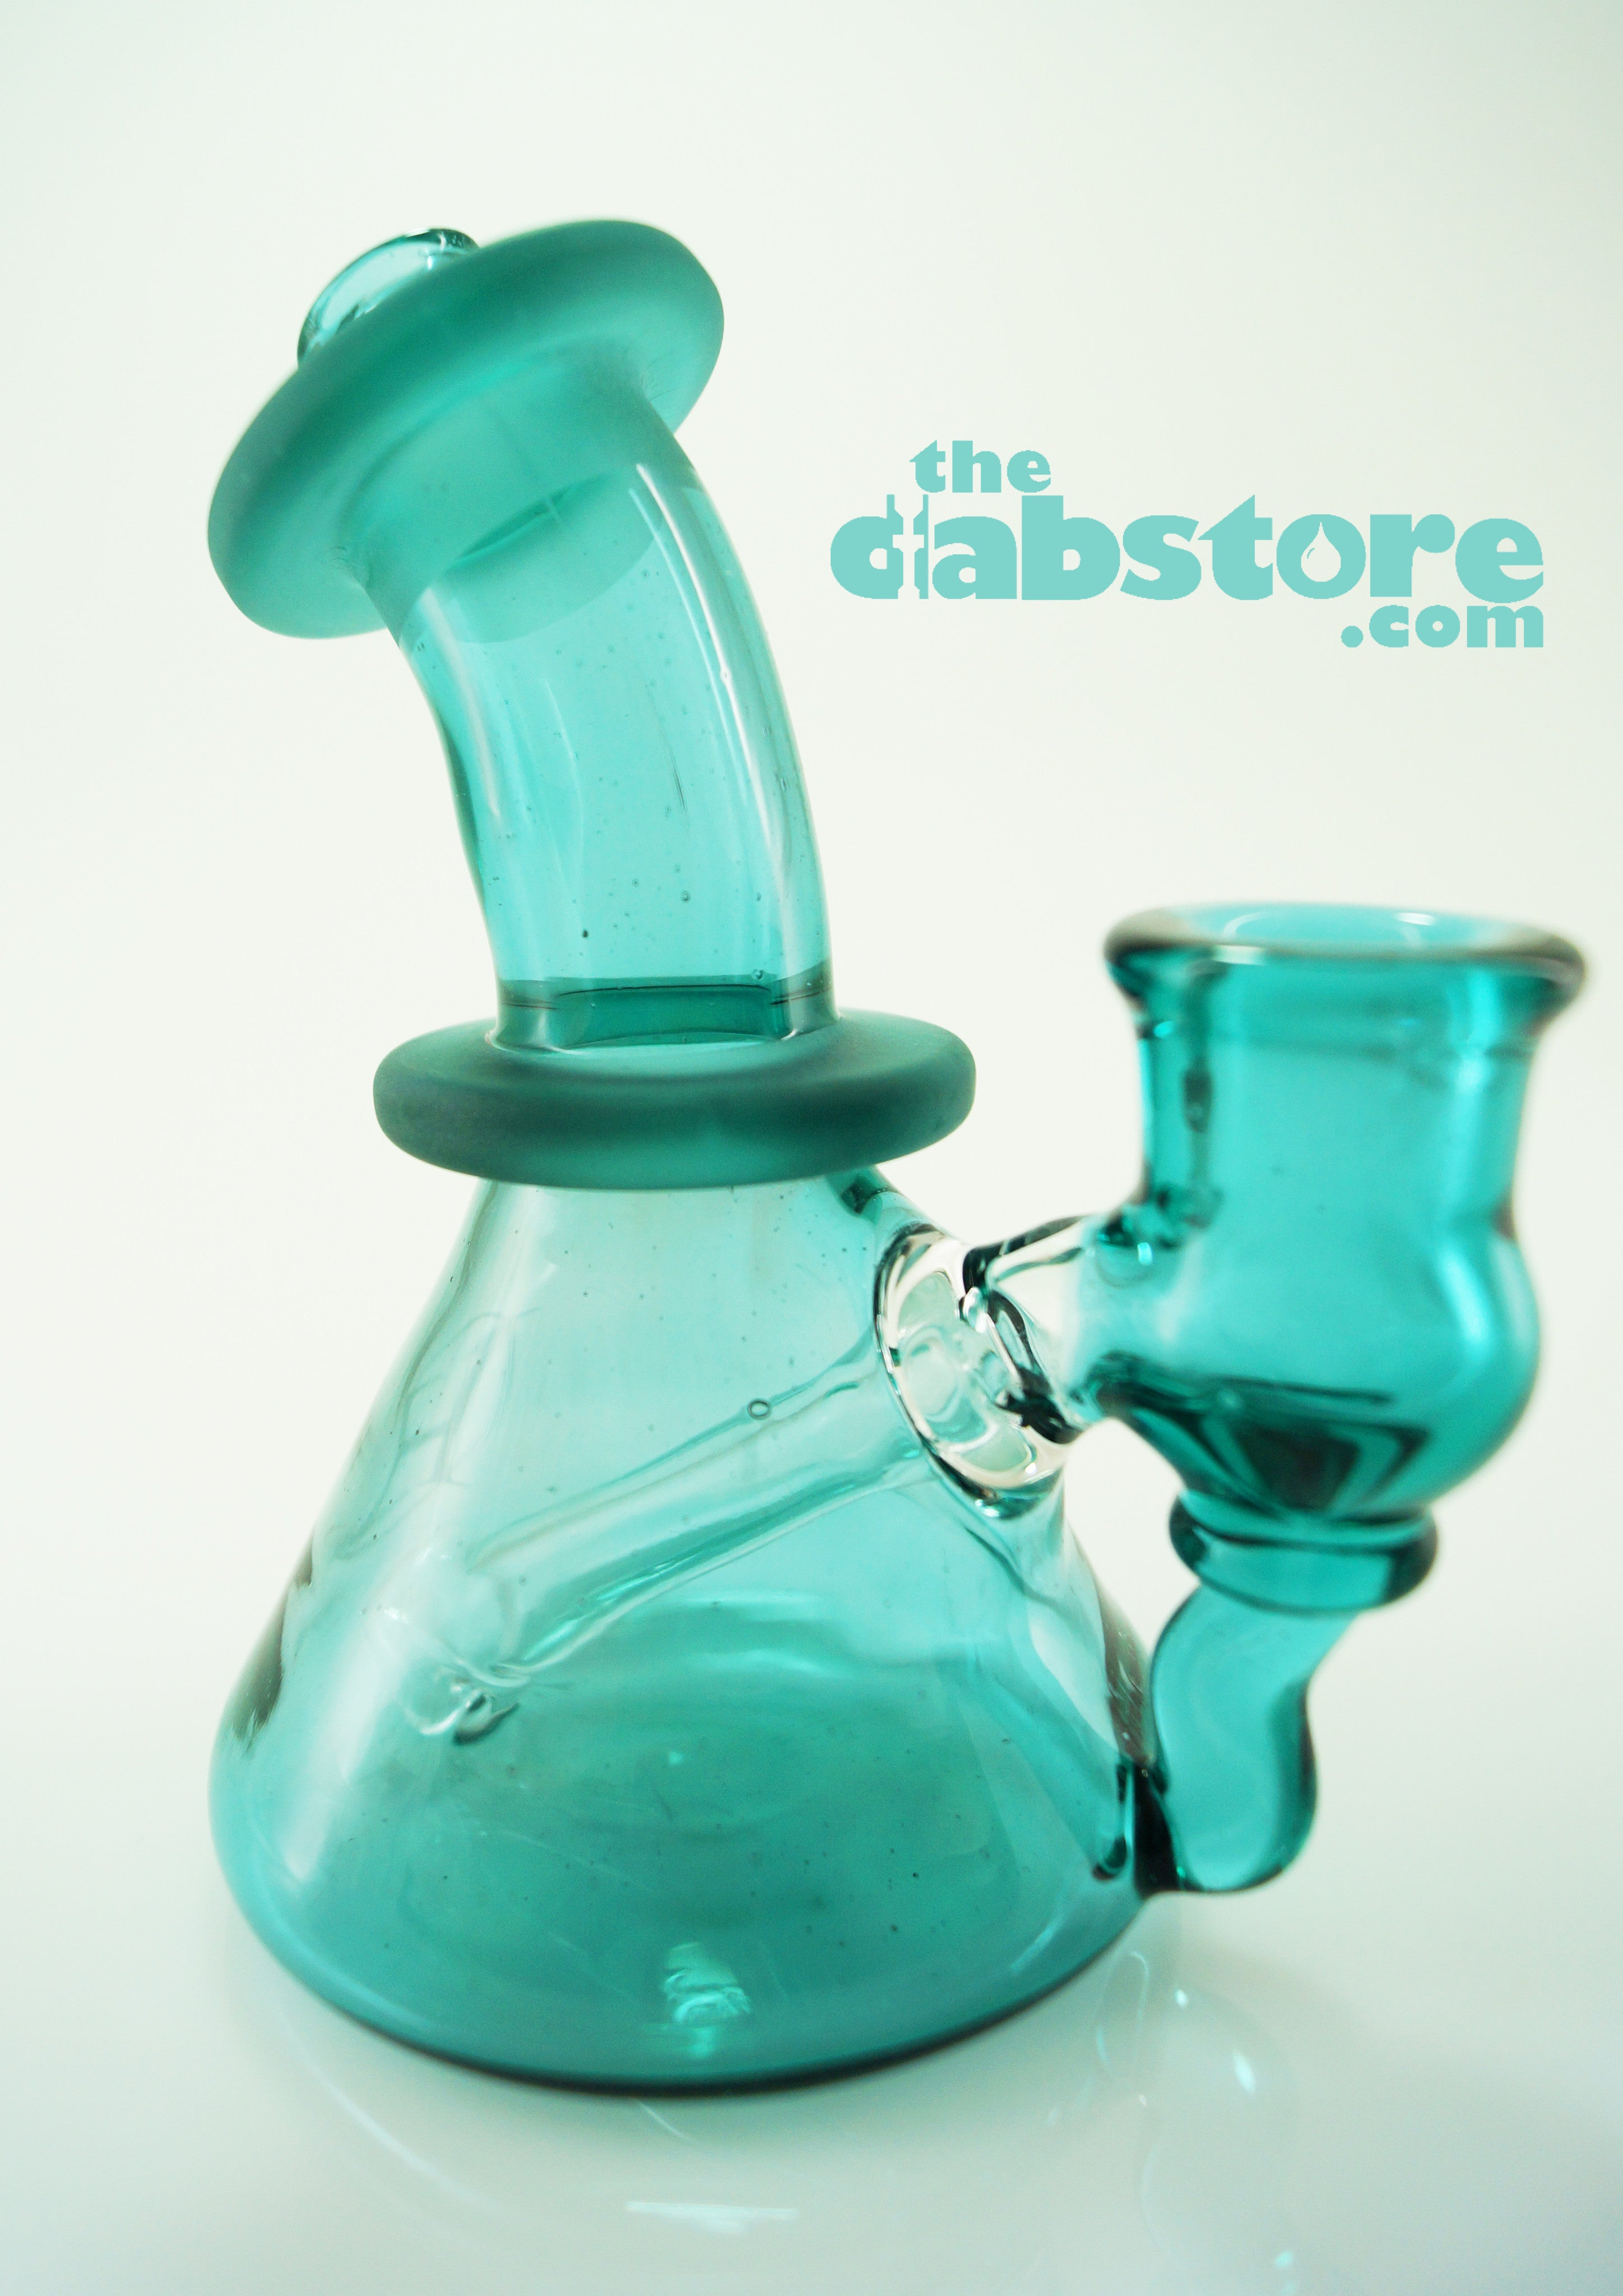 Huffy Glass - 14 MM F Arctic Blitz Micro Jammer | TheDabstore